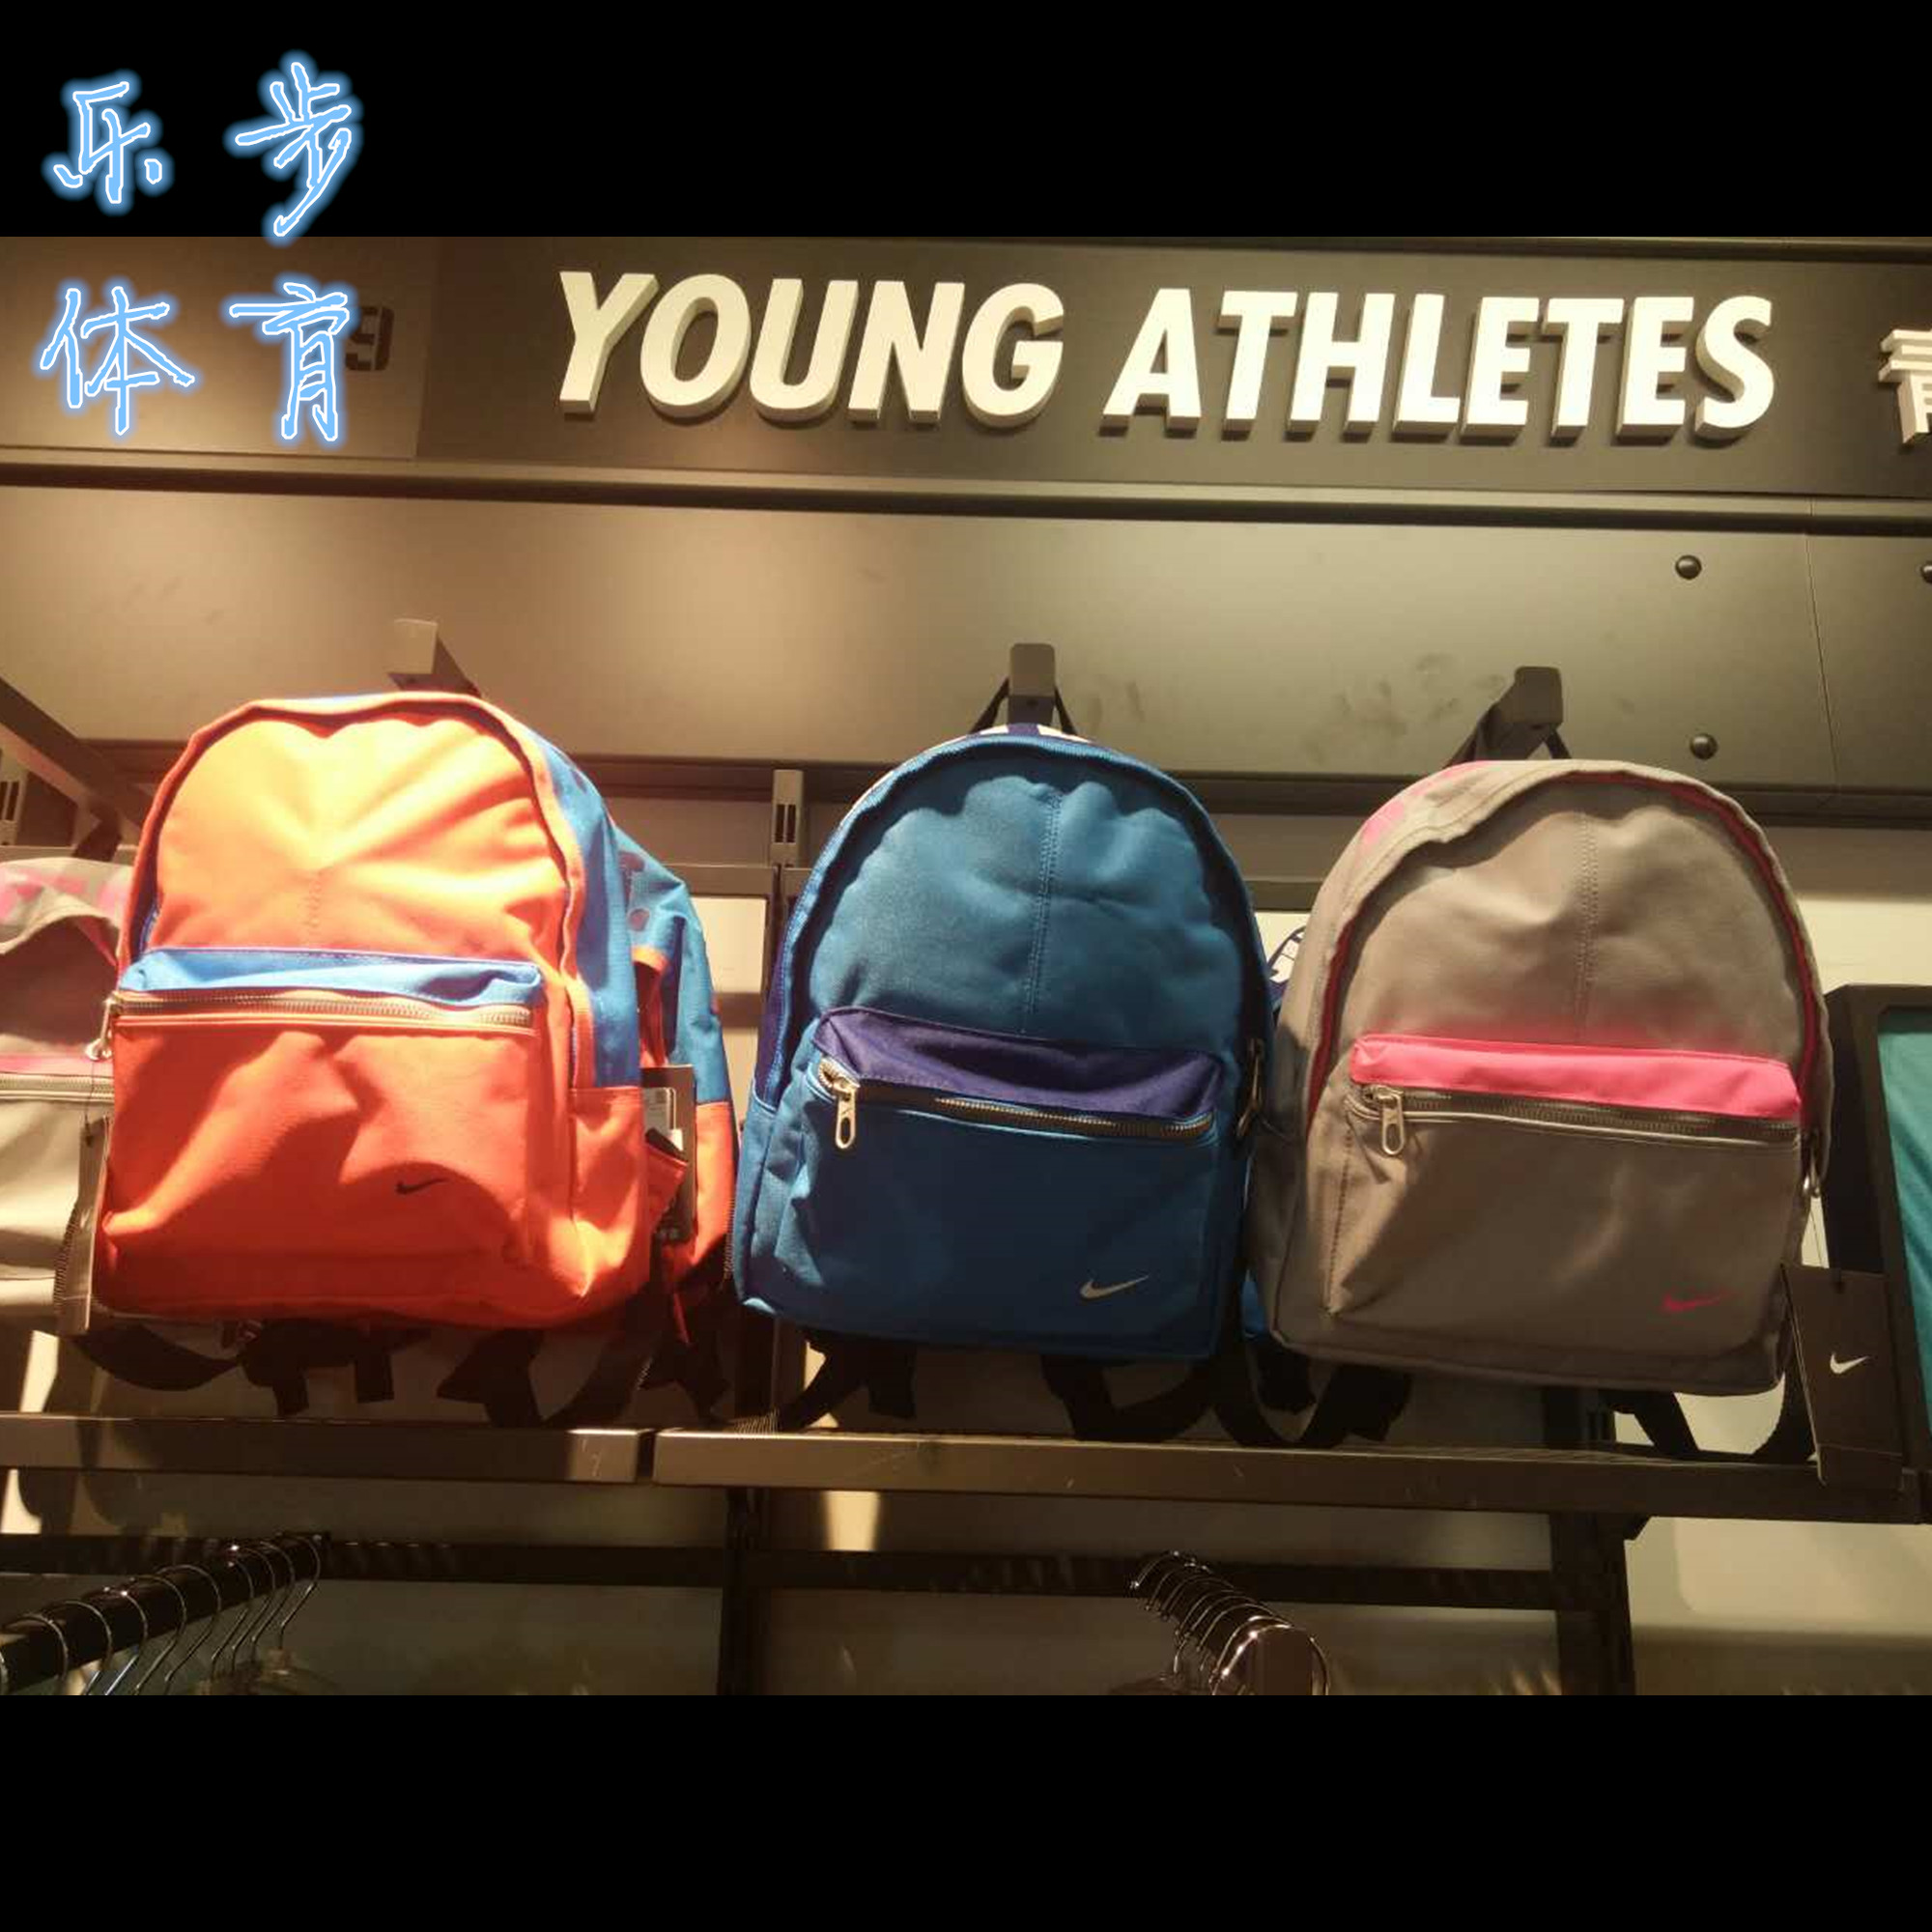 Nike class schoolbag children's backpack ba4606-017-435 backpack bag ba4665